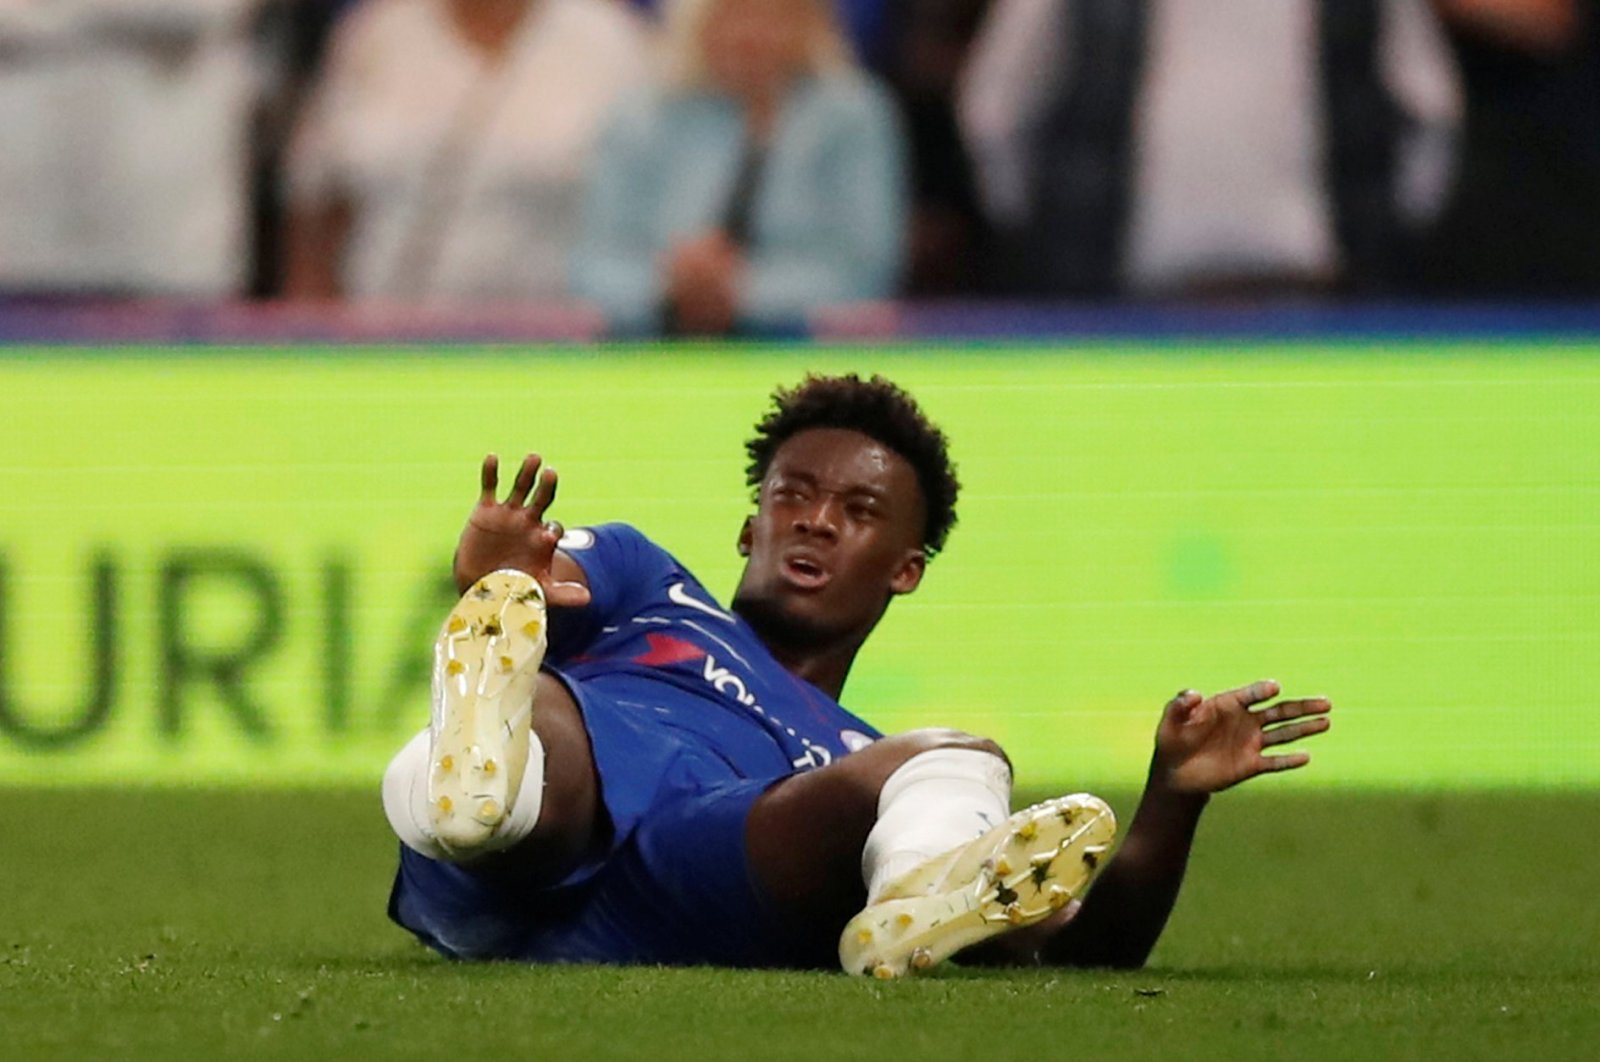 Chelsea: Callum Hudson-Odoi's season-ending injury couldn't have come at a worse time